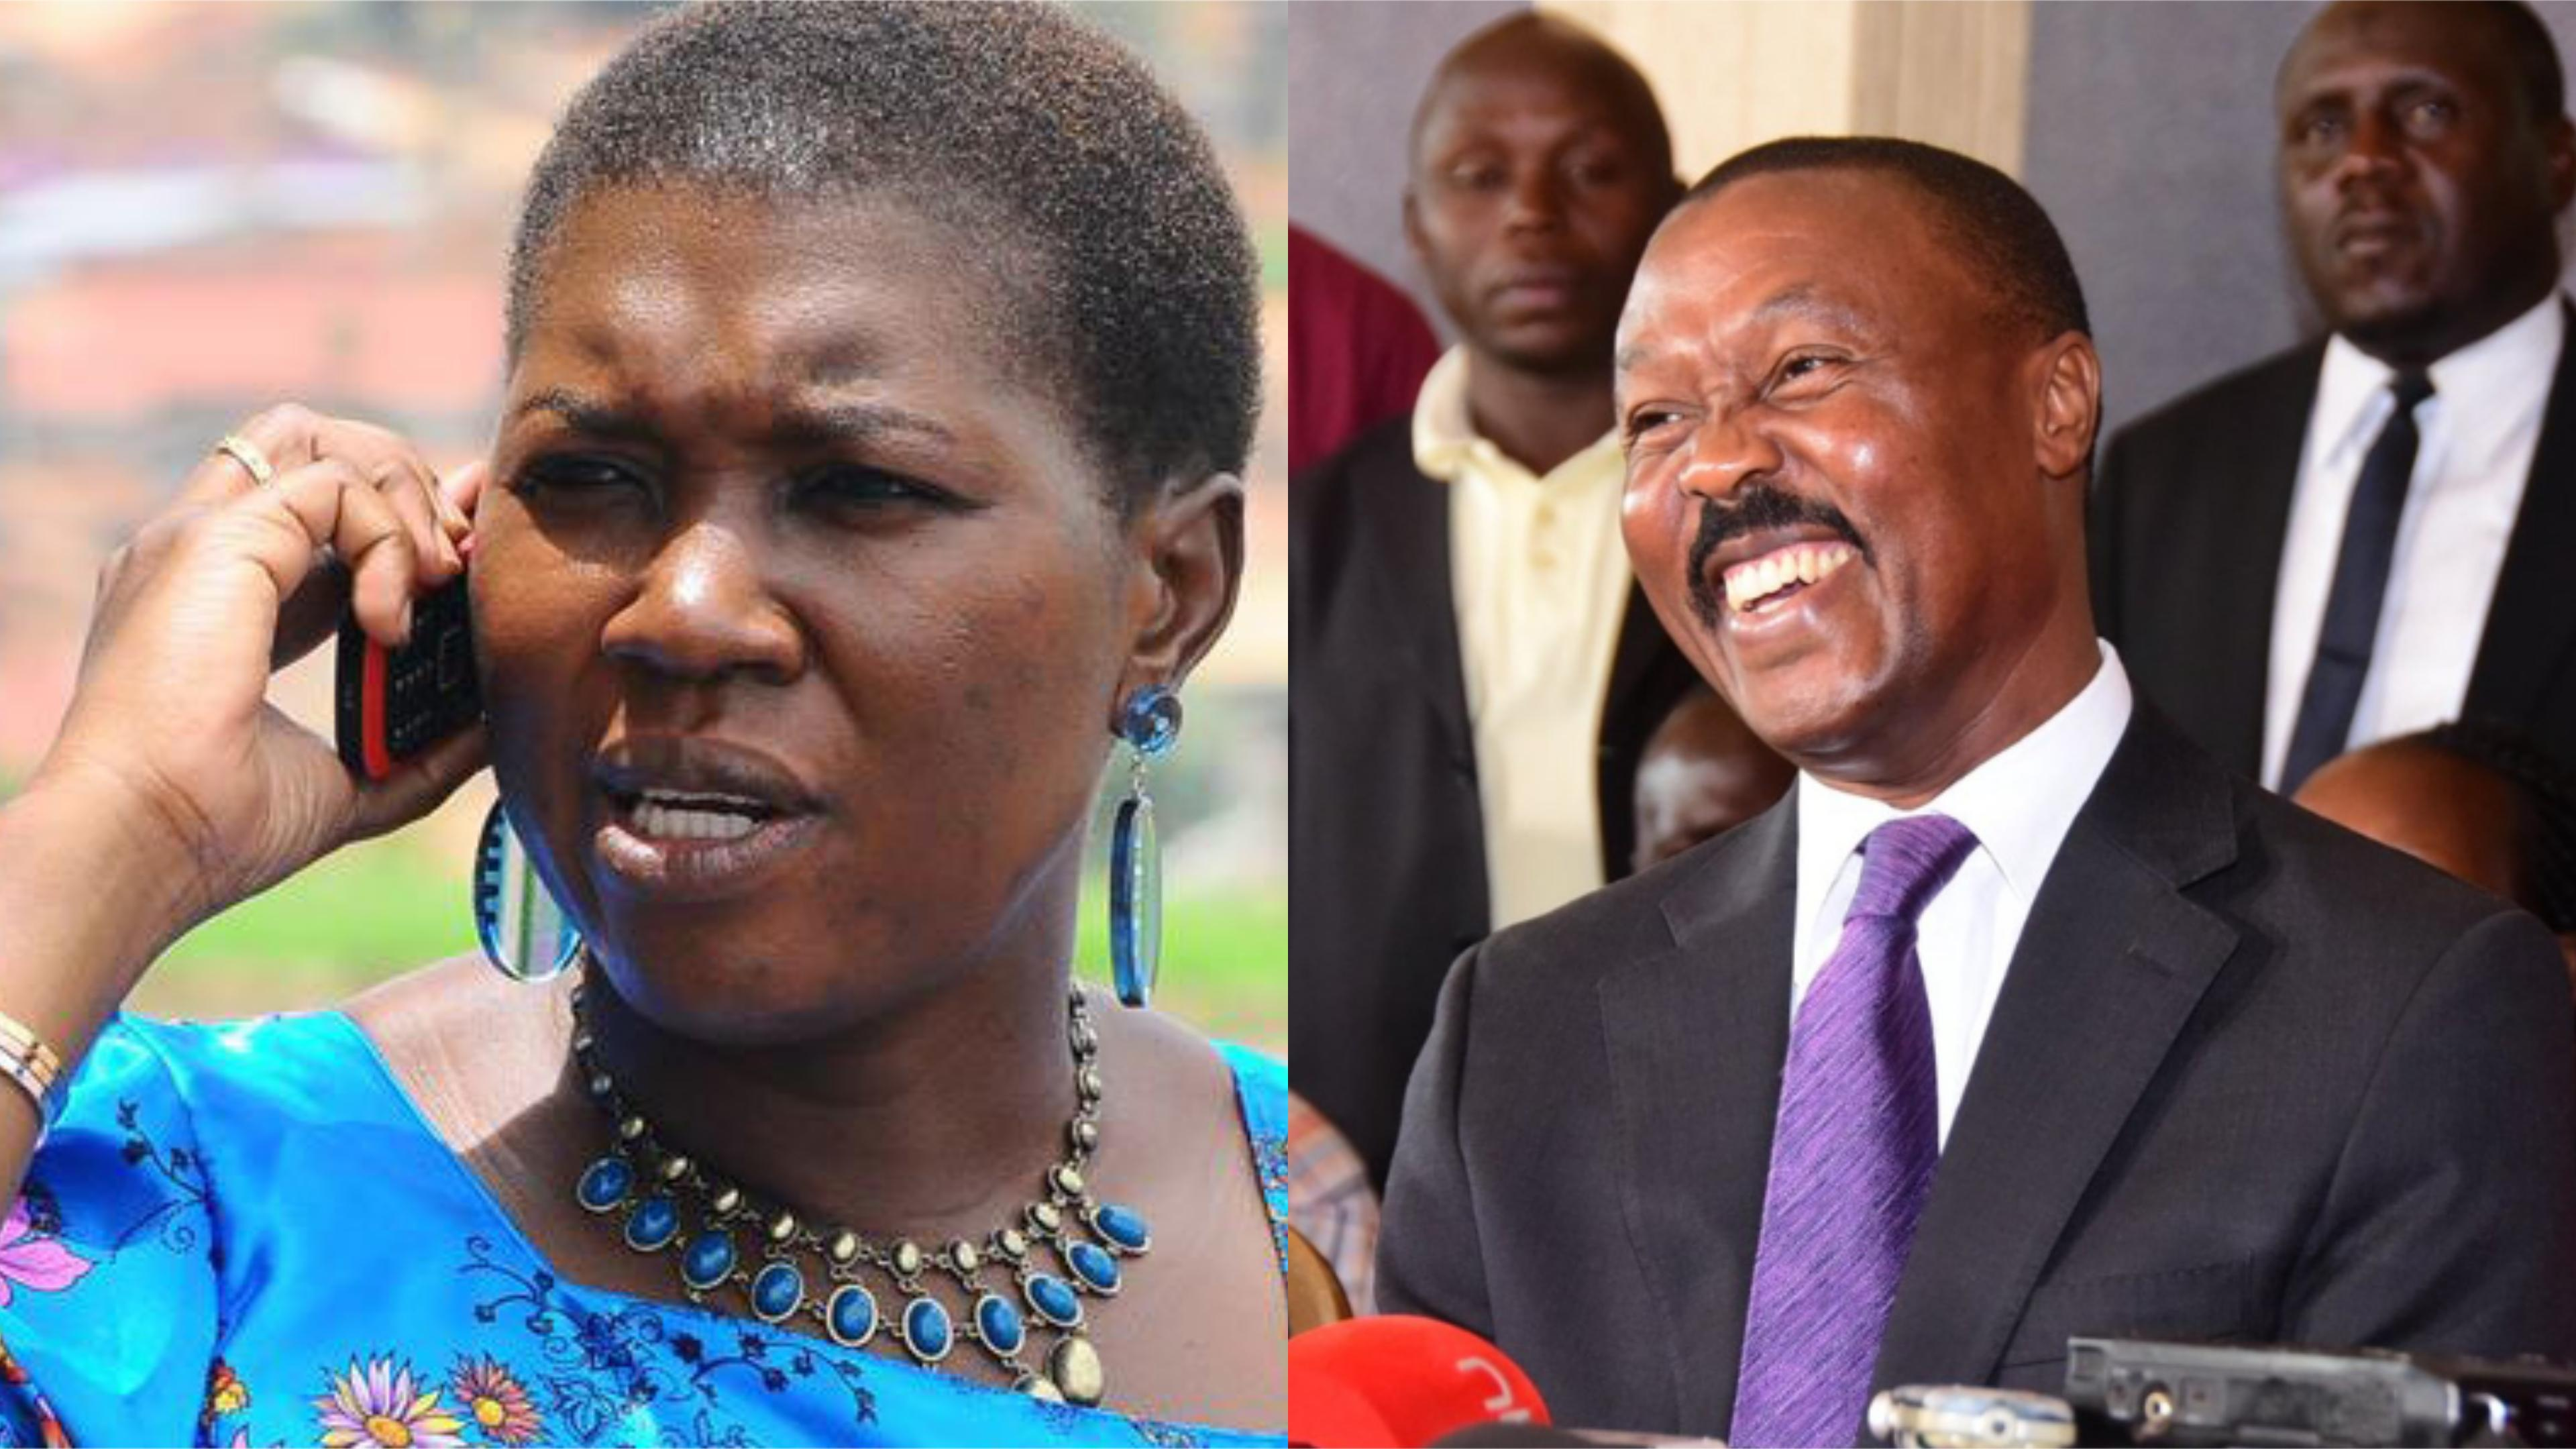 FDC Vice president for eastern region, Ms Salaamu Musumba has slammed the New Formation's Mugisha Muntu citing that he is not competent to lead the country (FILE PHOTO)